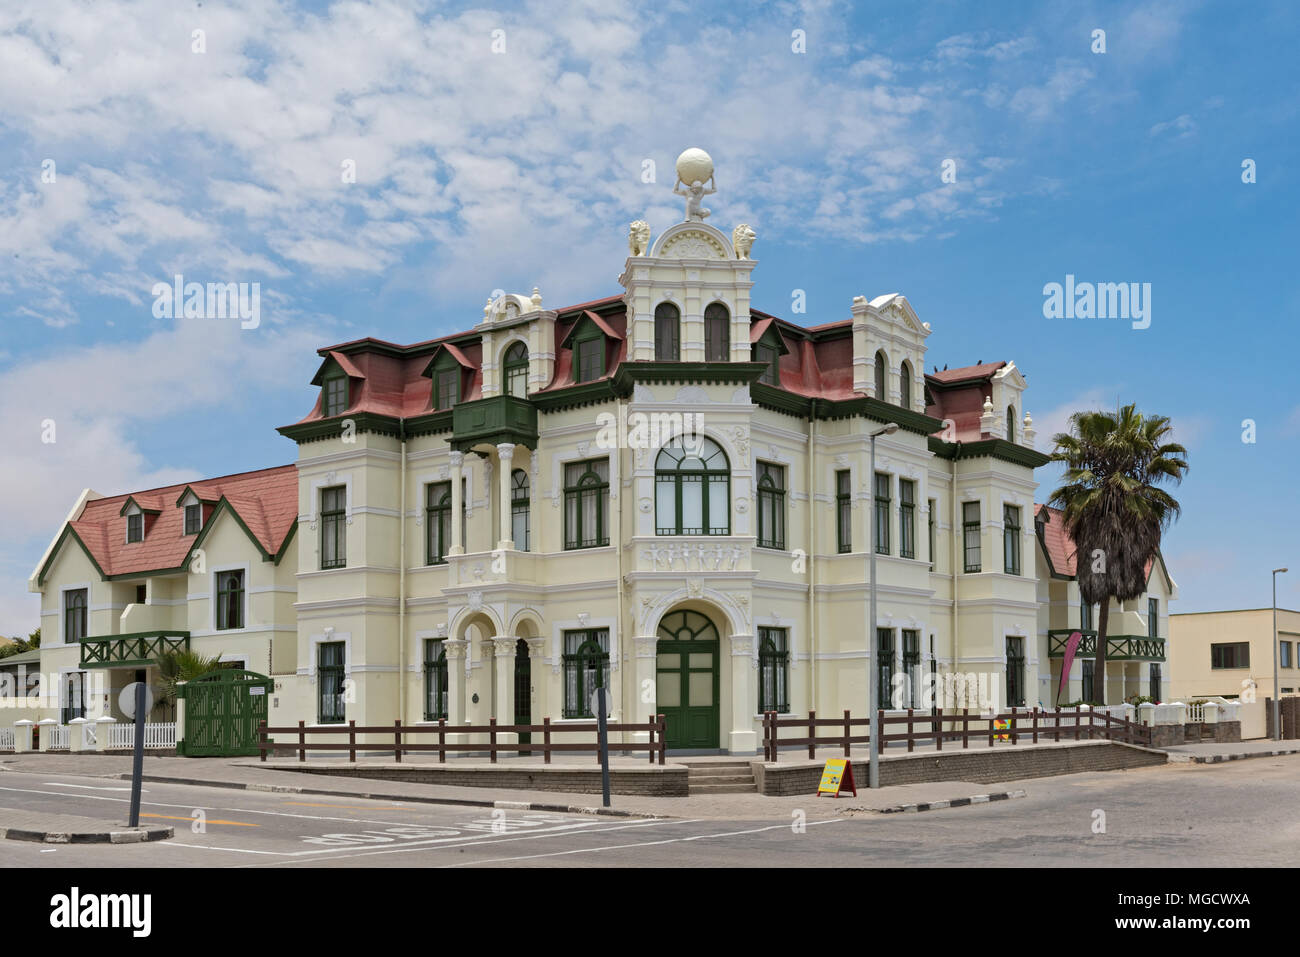 The Hohenzollernhaus, monument and landmark of the city Swakopmund, Namibia - Stock Image